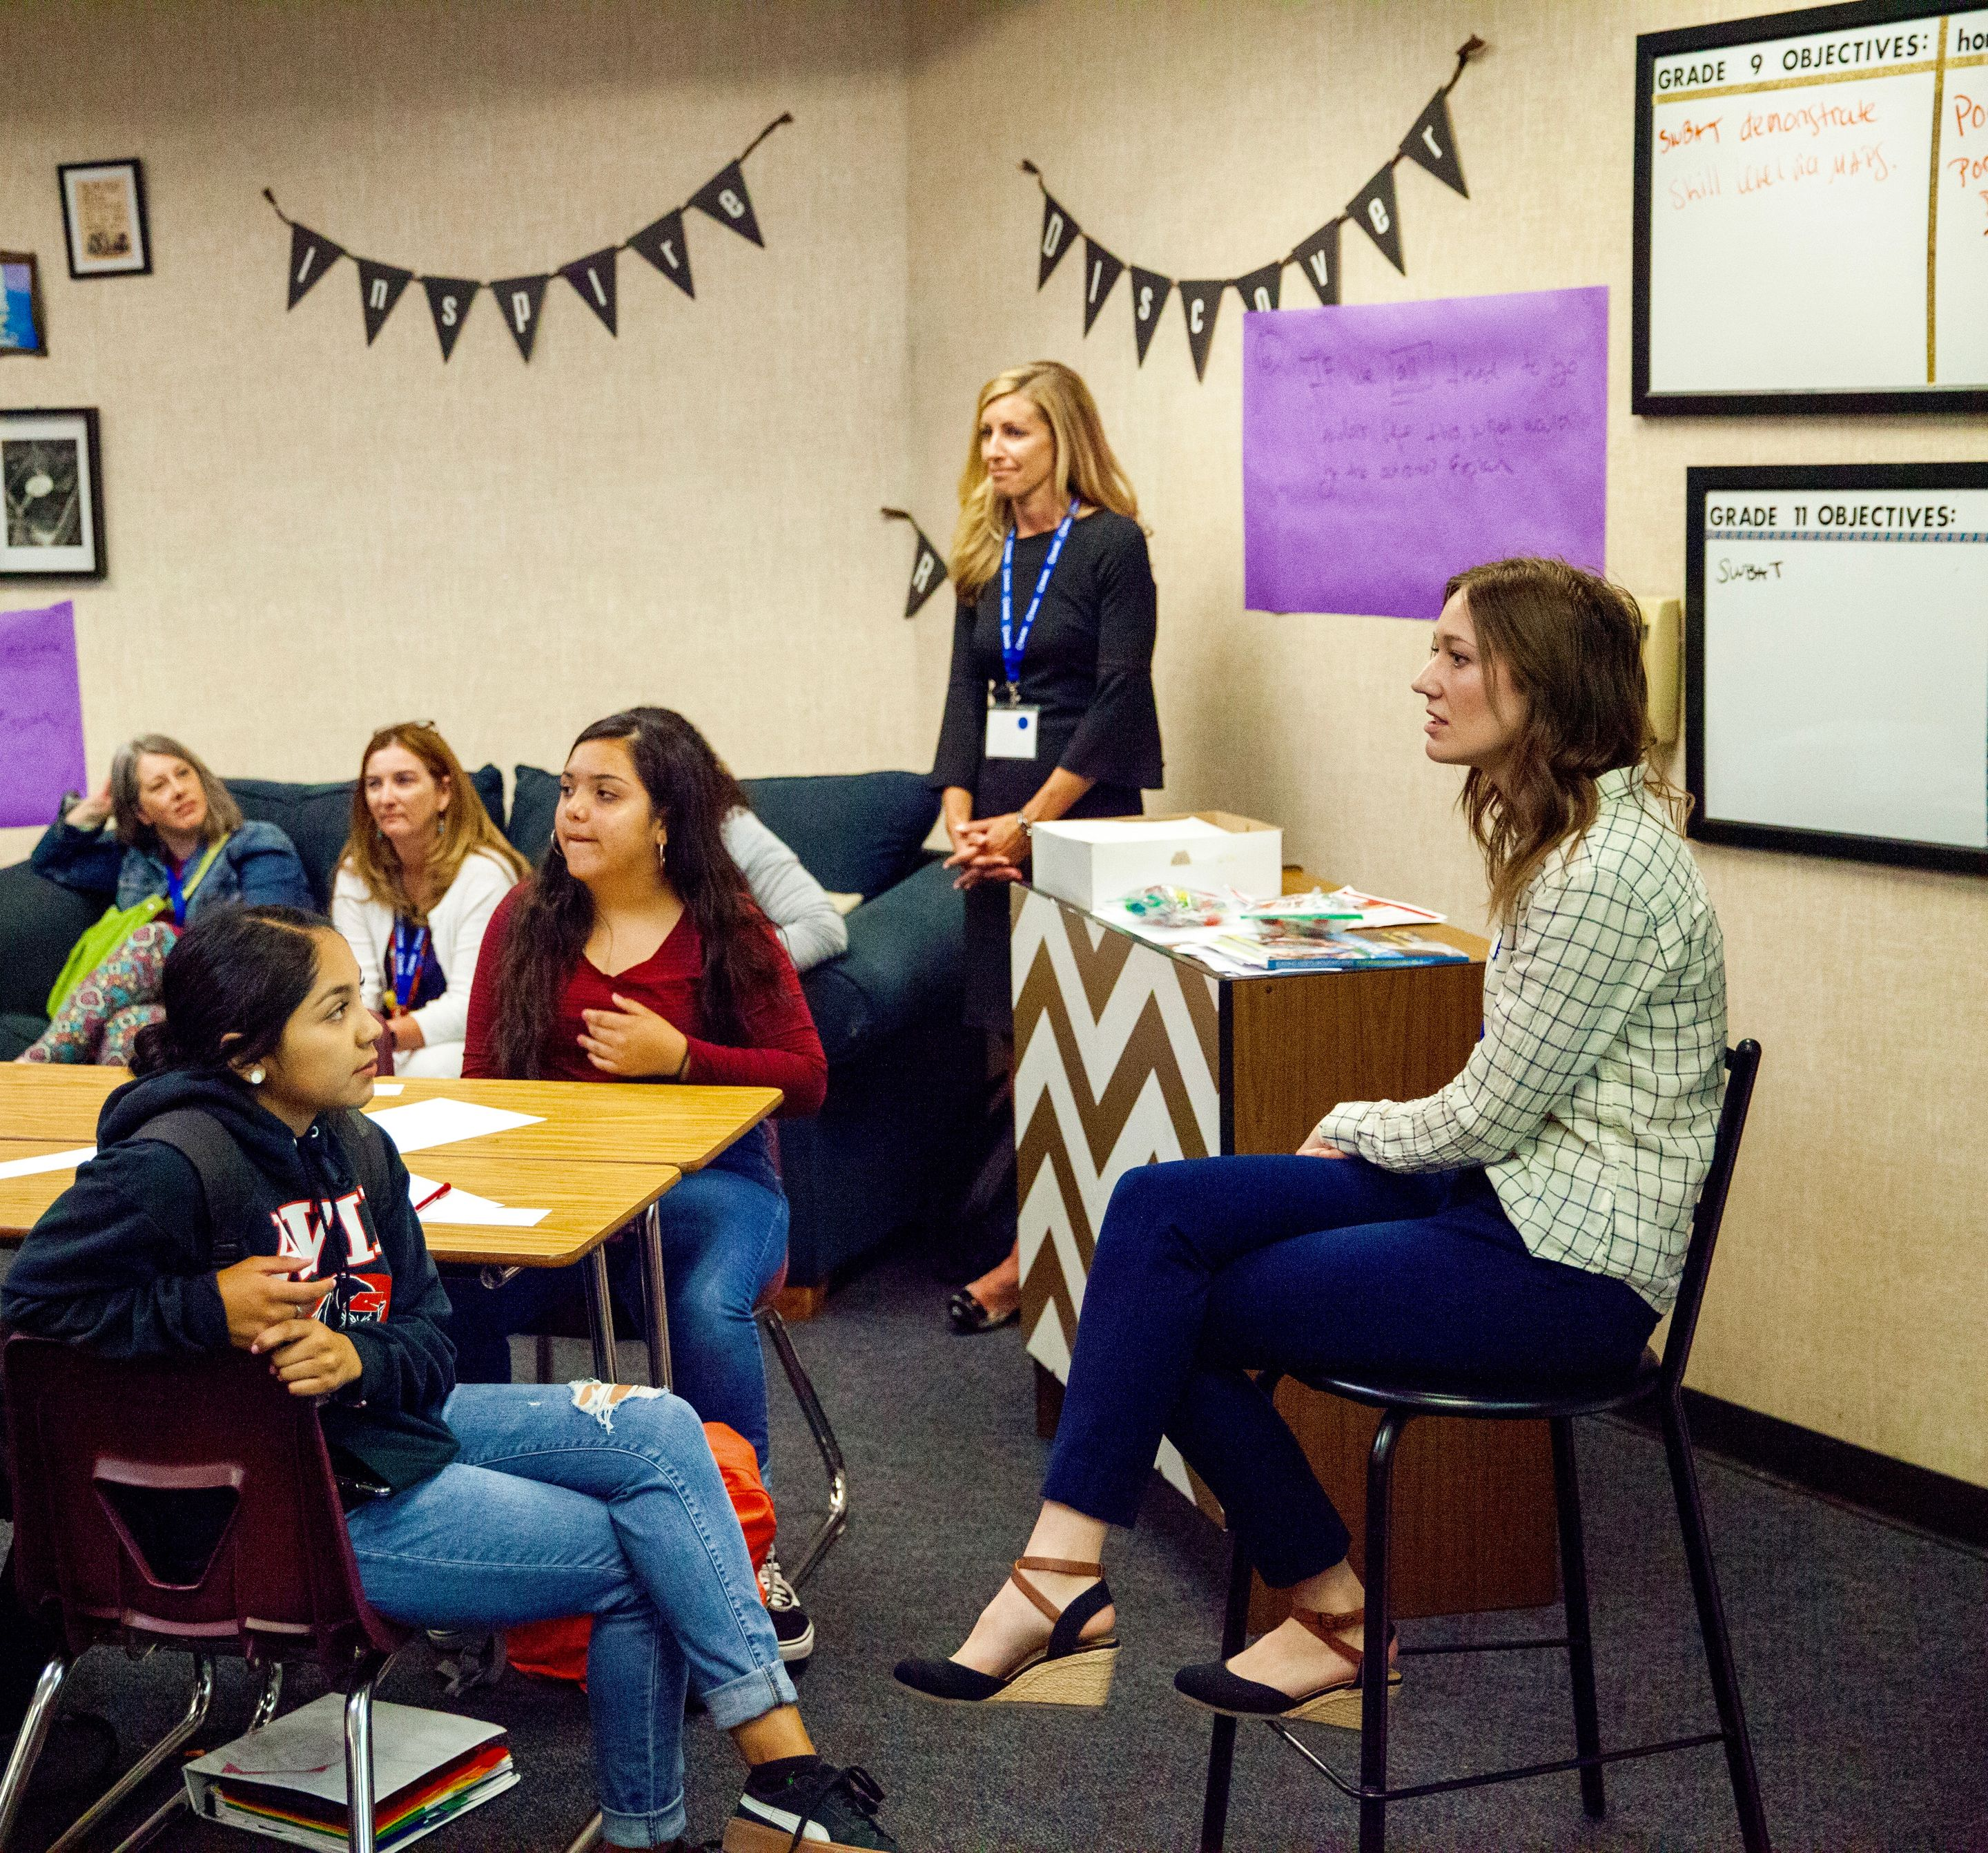 Educators at Valley View High School in California facilitate an iTime session with high school freshmen to help improve teacher-student relationships and boost achievement.